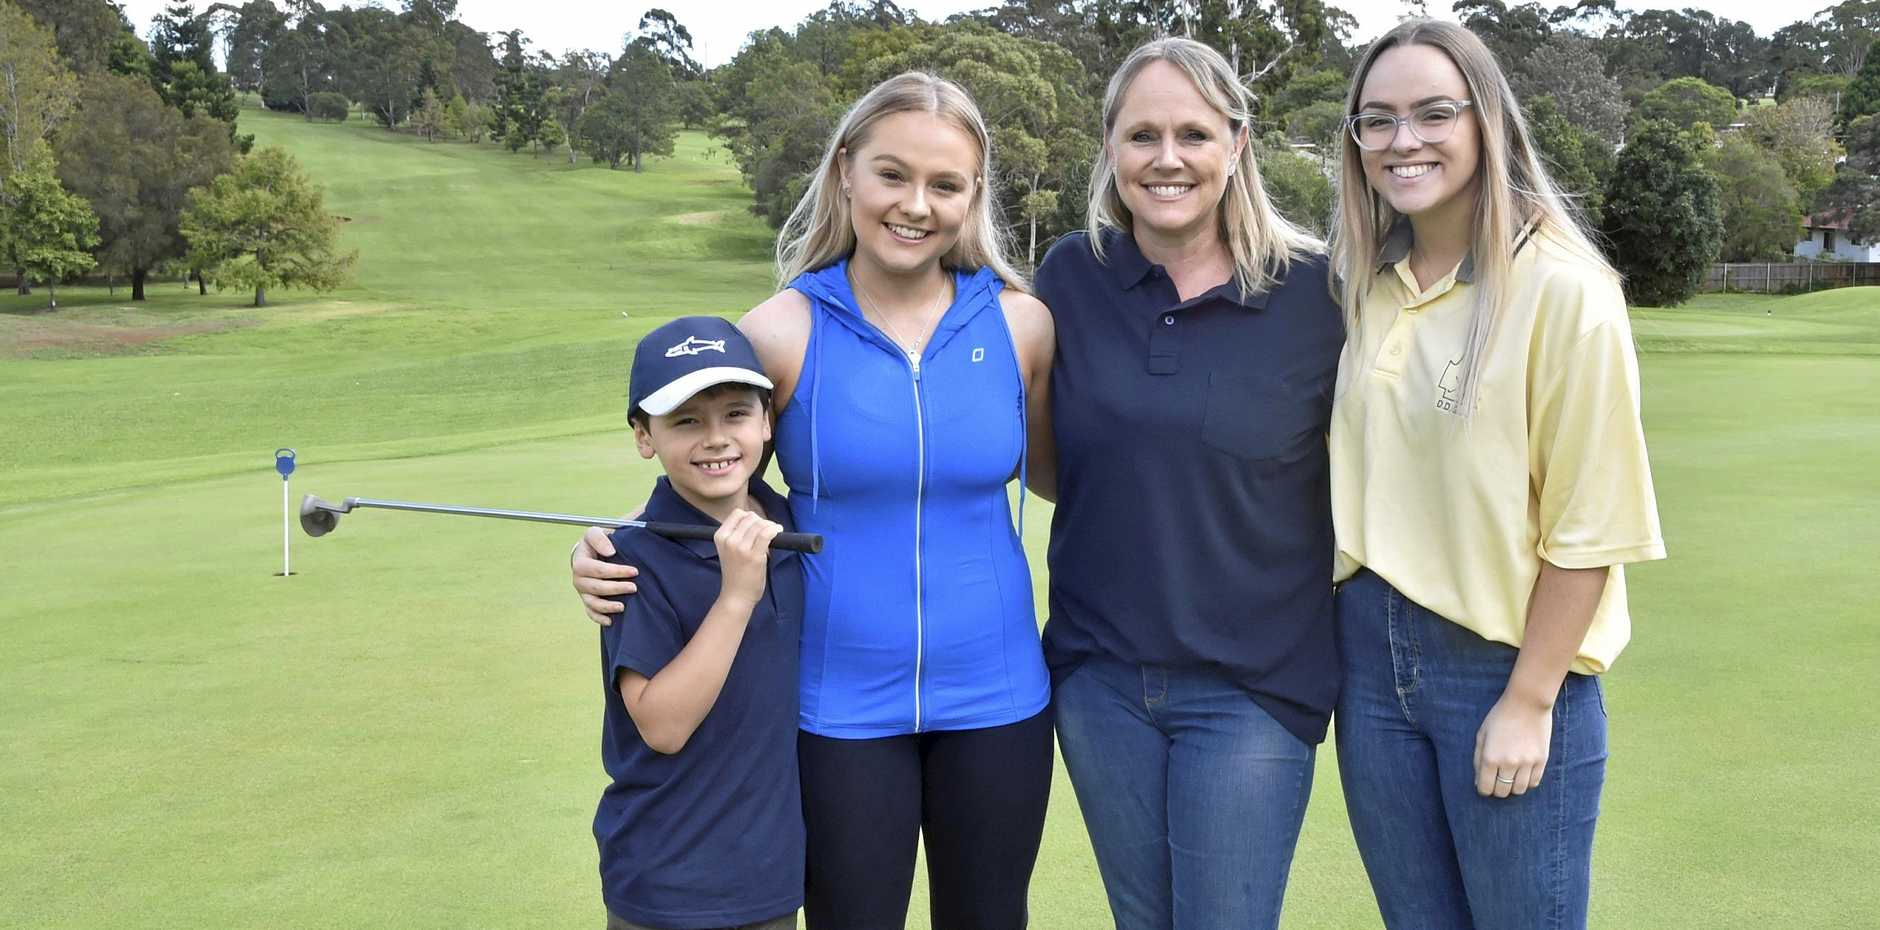 IN MEMORY: Celebrating the life of Leon Treadwell are his family (from left) Lachlan Betros, Brooke, Leah and Emily Treadwell.